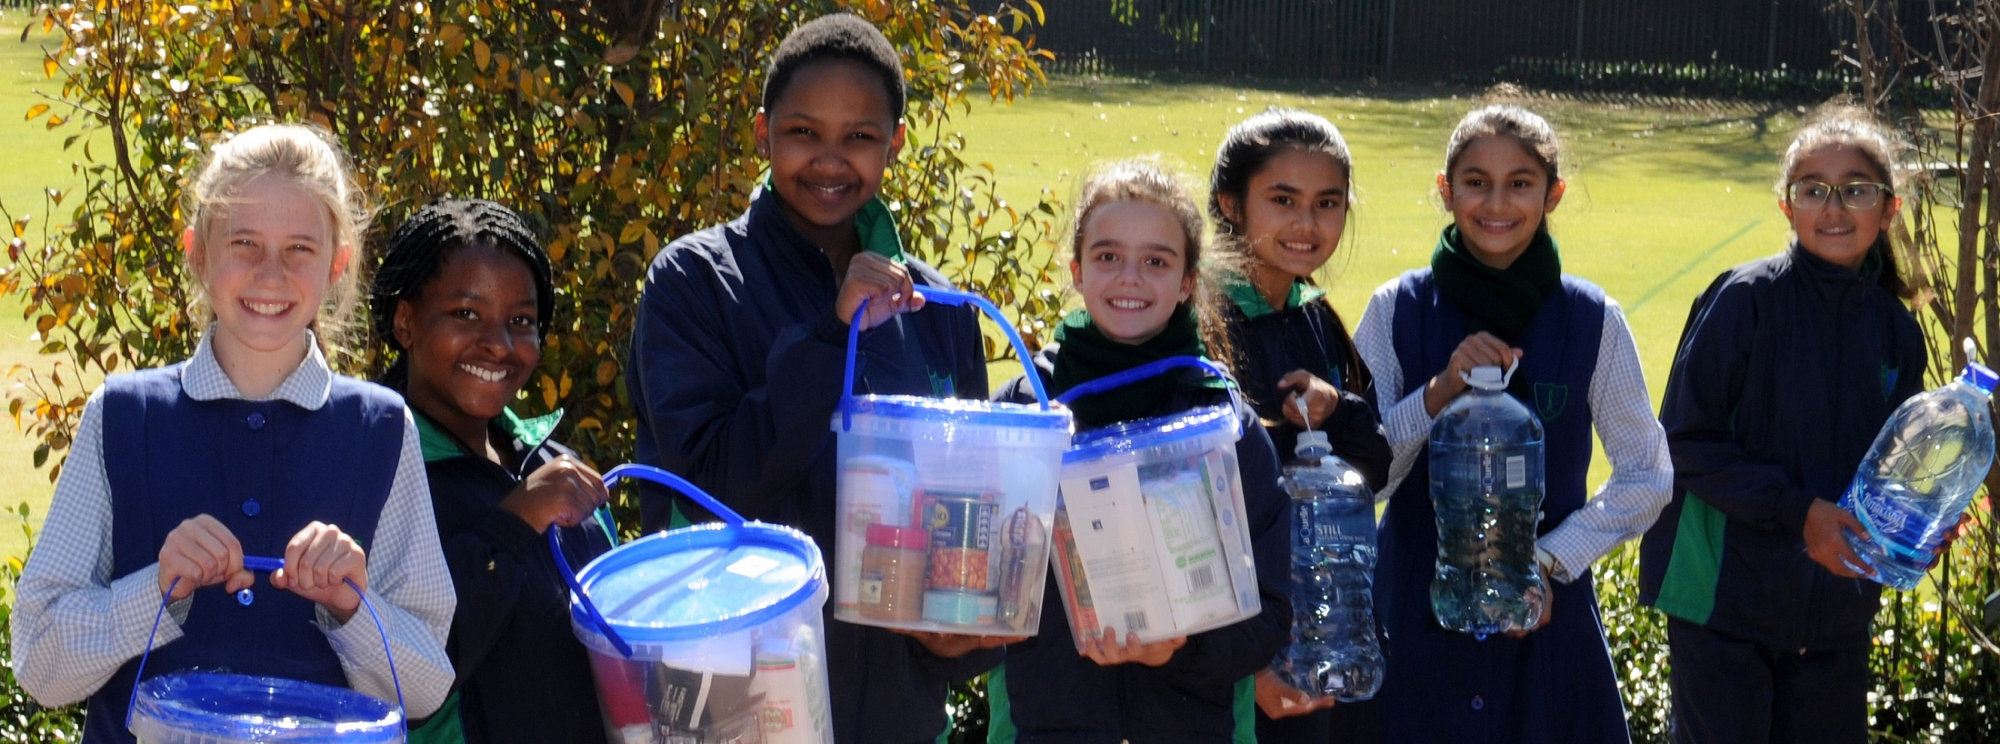 reaching out Auckland park preparatory school